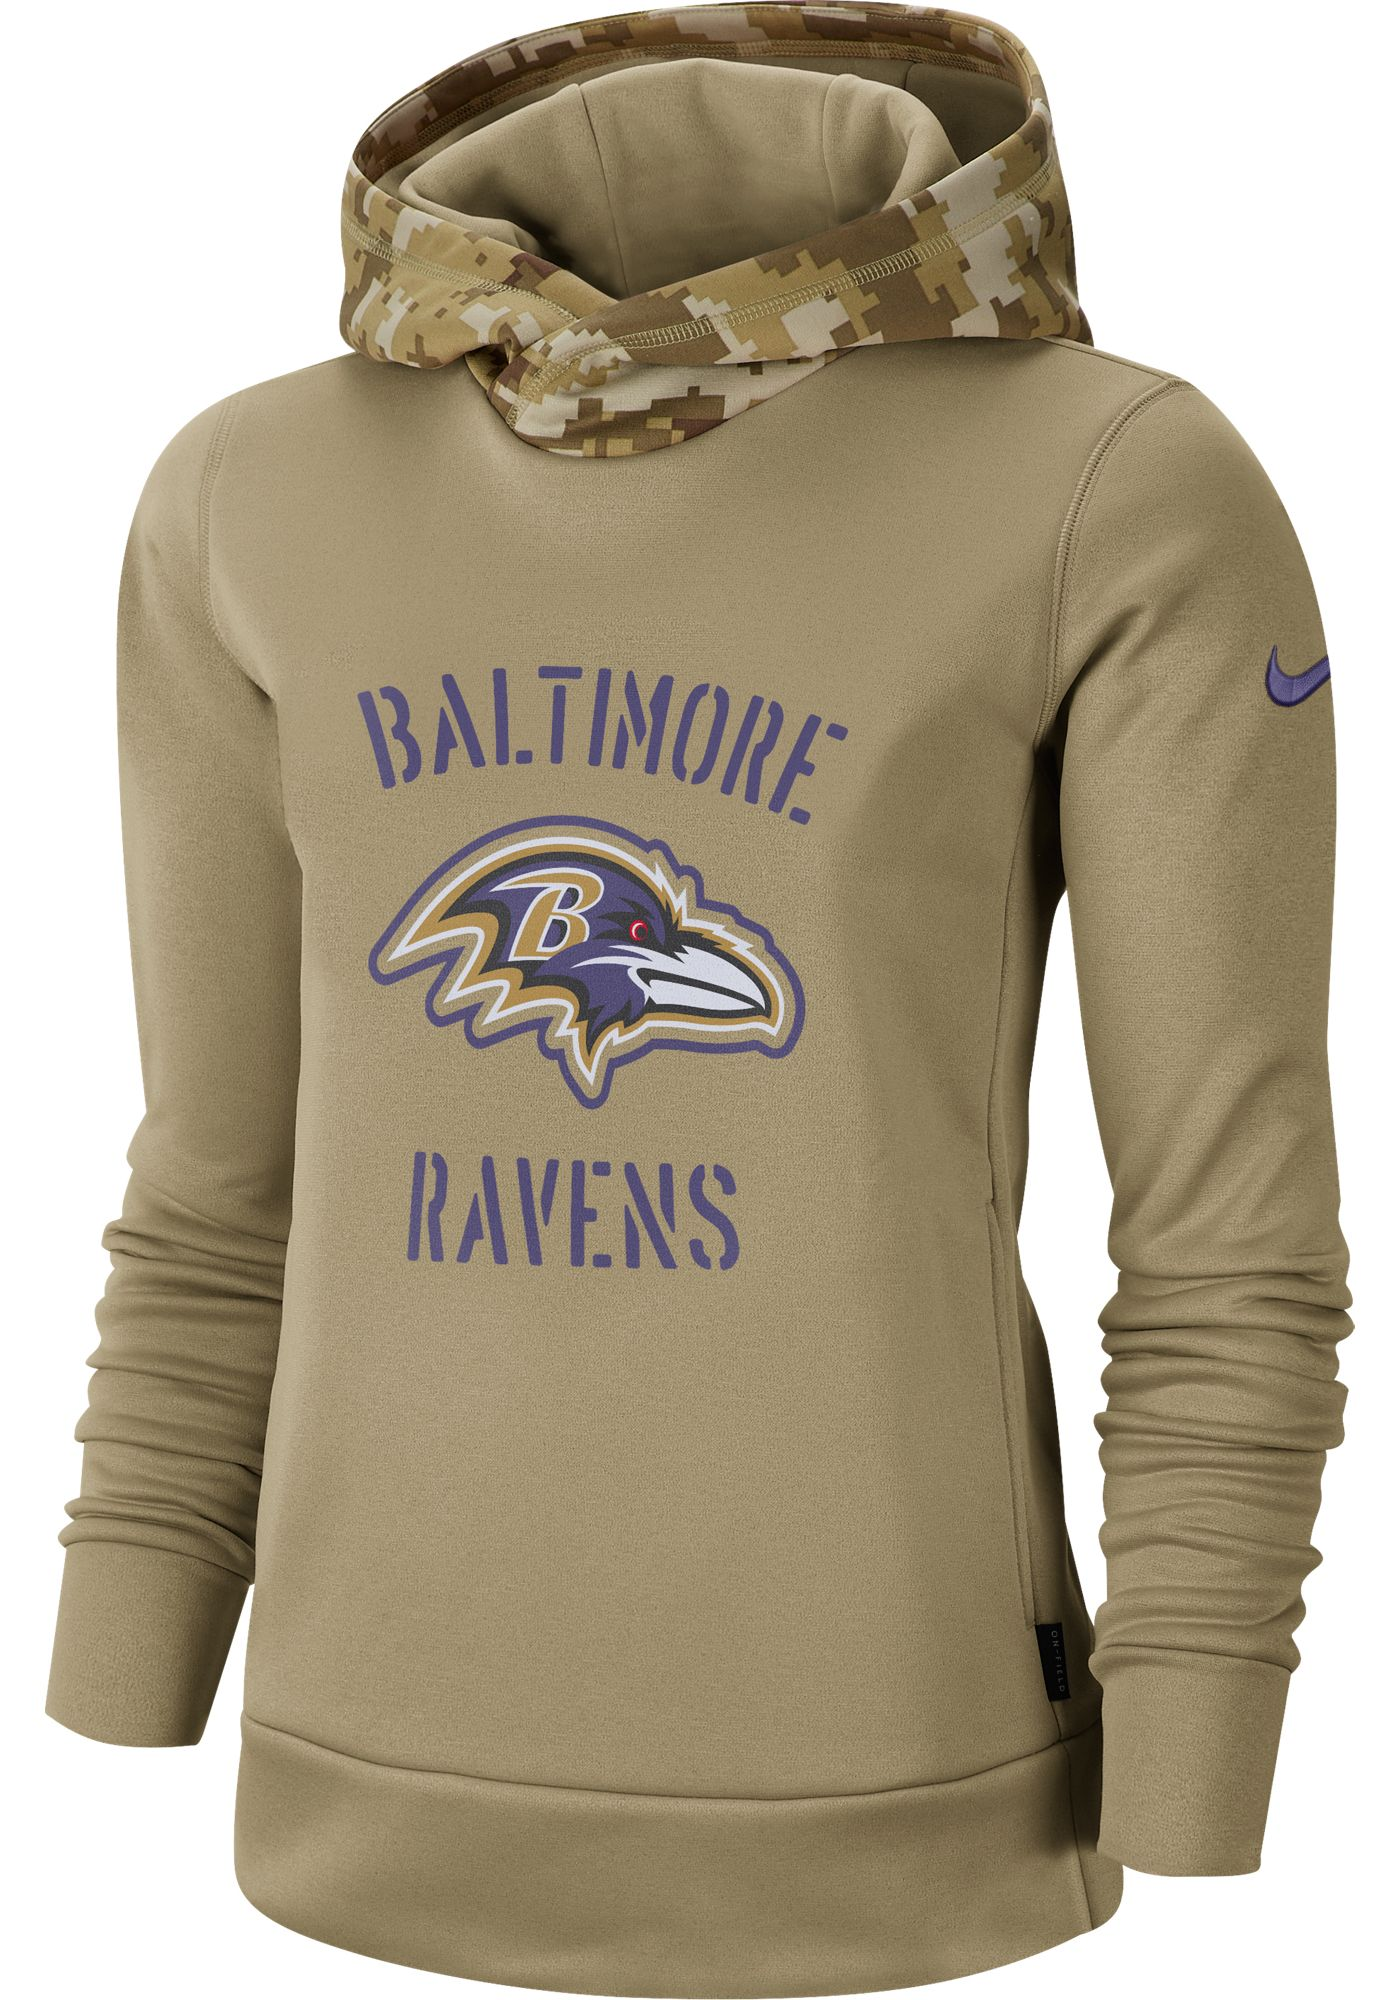 Nike Women's Salute to Service Baltimore Ravens Therma-FIT Beige Camo Hoodie